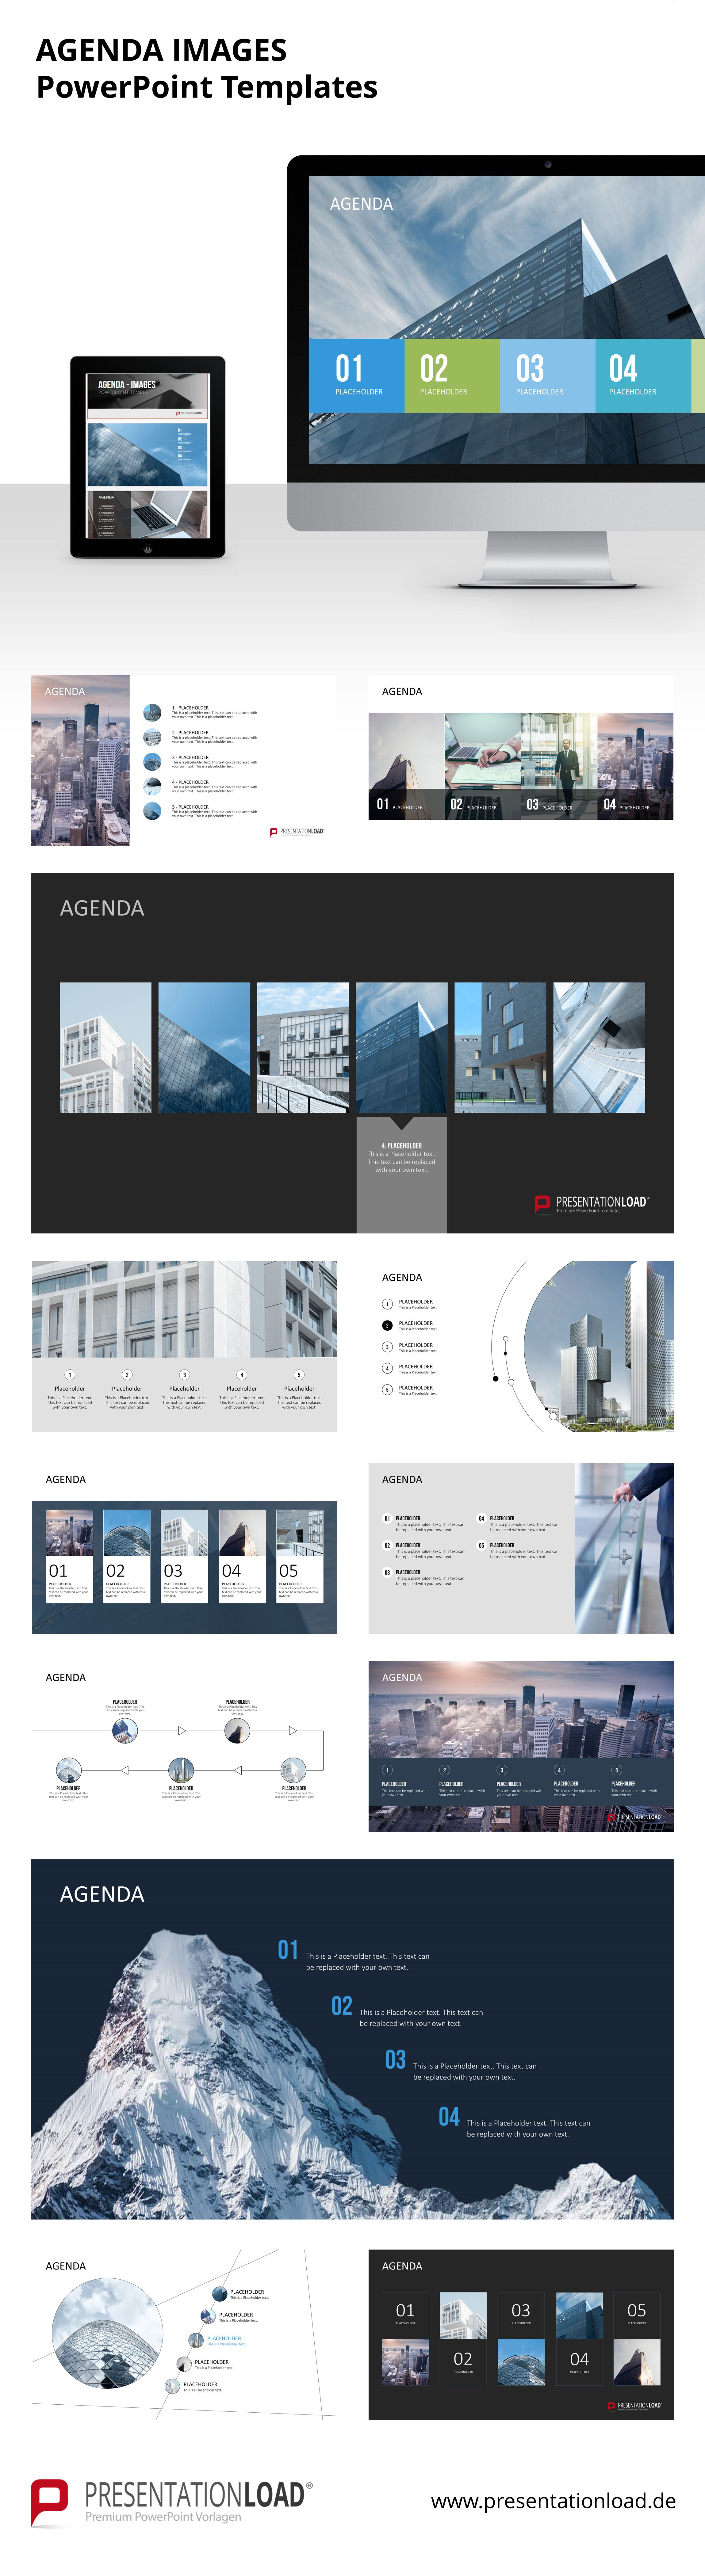 Try our extensive selection to illustrate your agenda with high ...